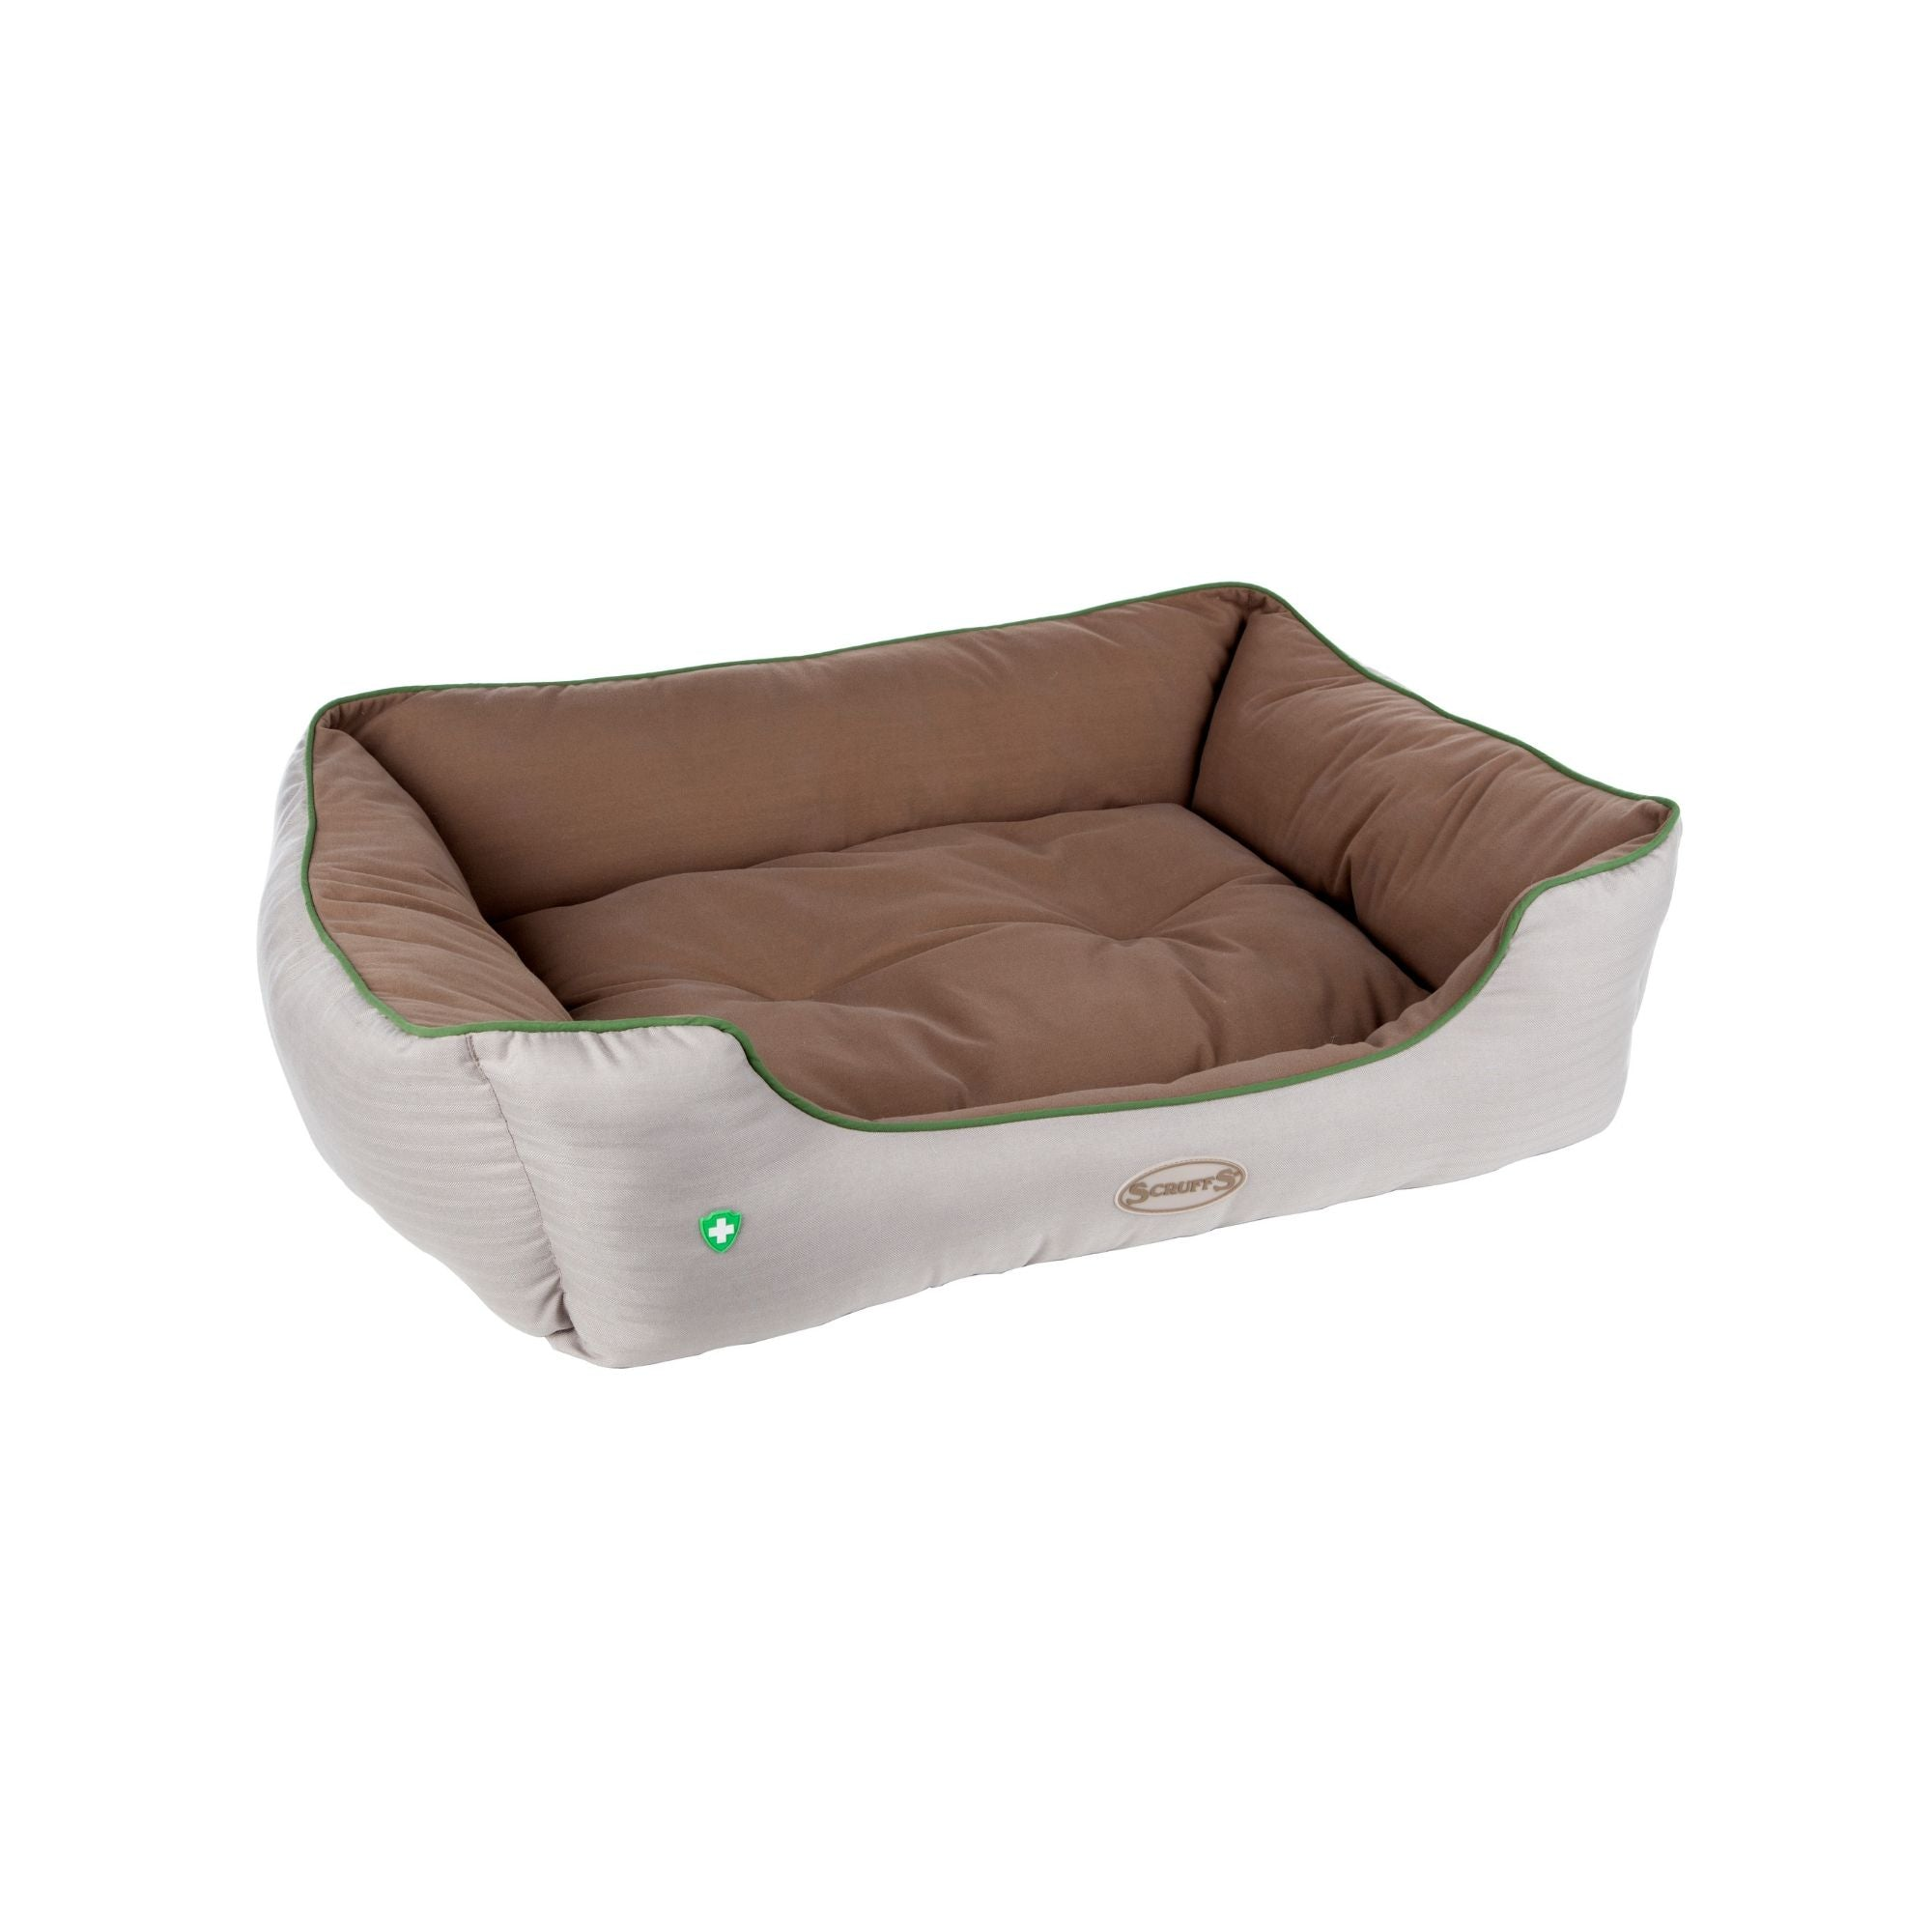 Scruffs Insect Shield Box Bed For Dogs, Anti-Bug | Barks & Bunnies